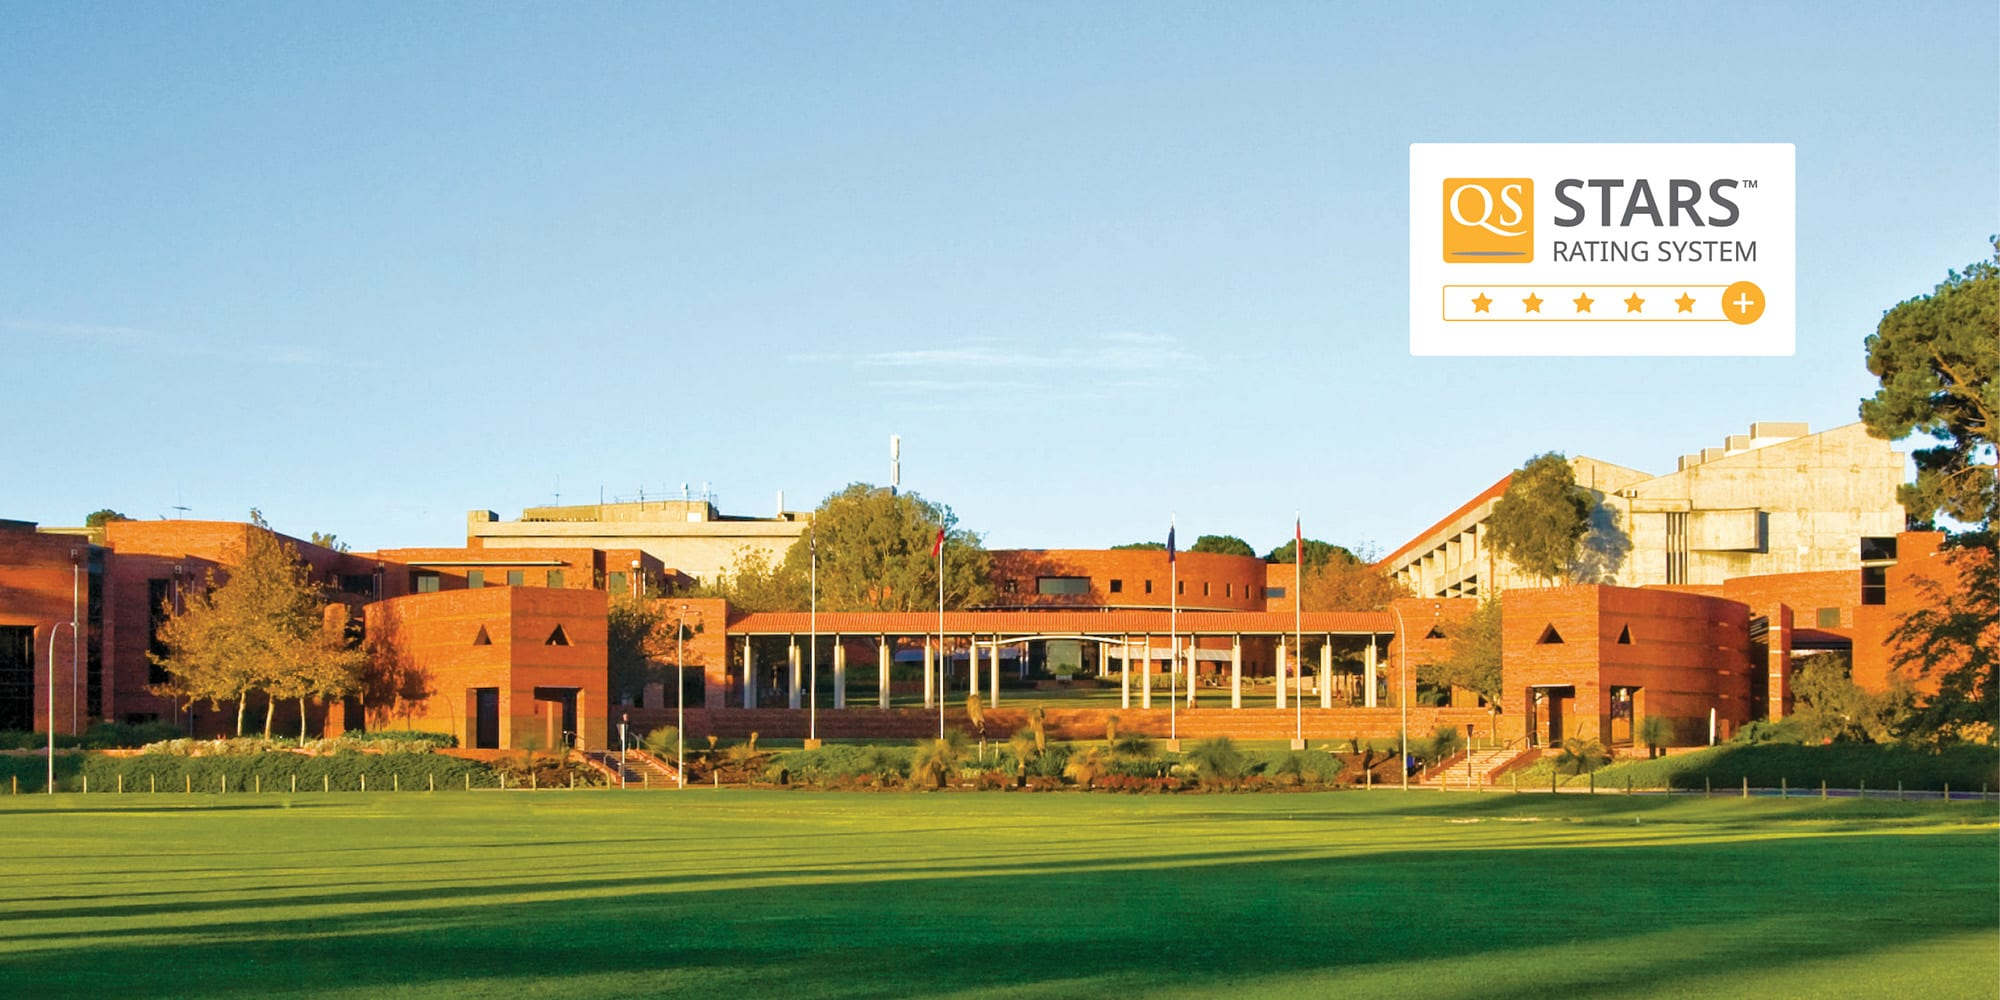 Curtin campus with the QS 5 star logo overlaid